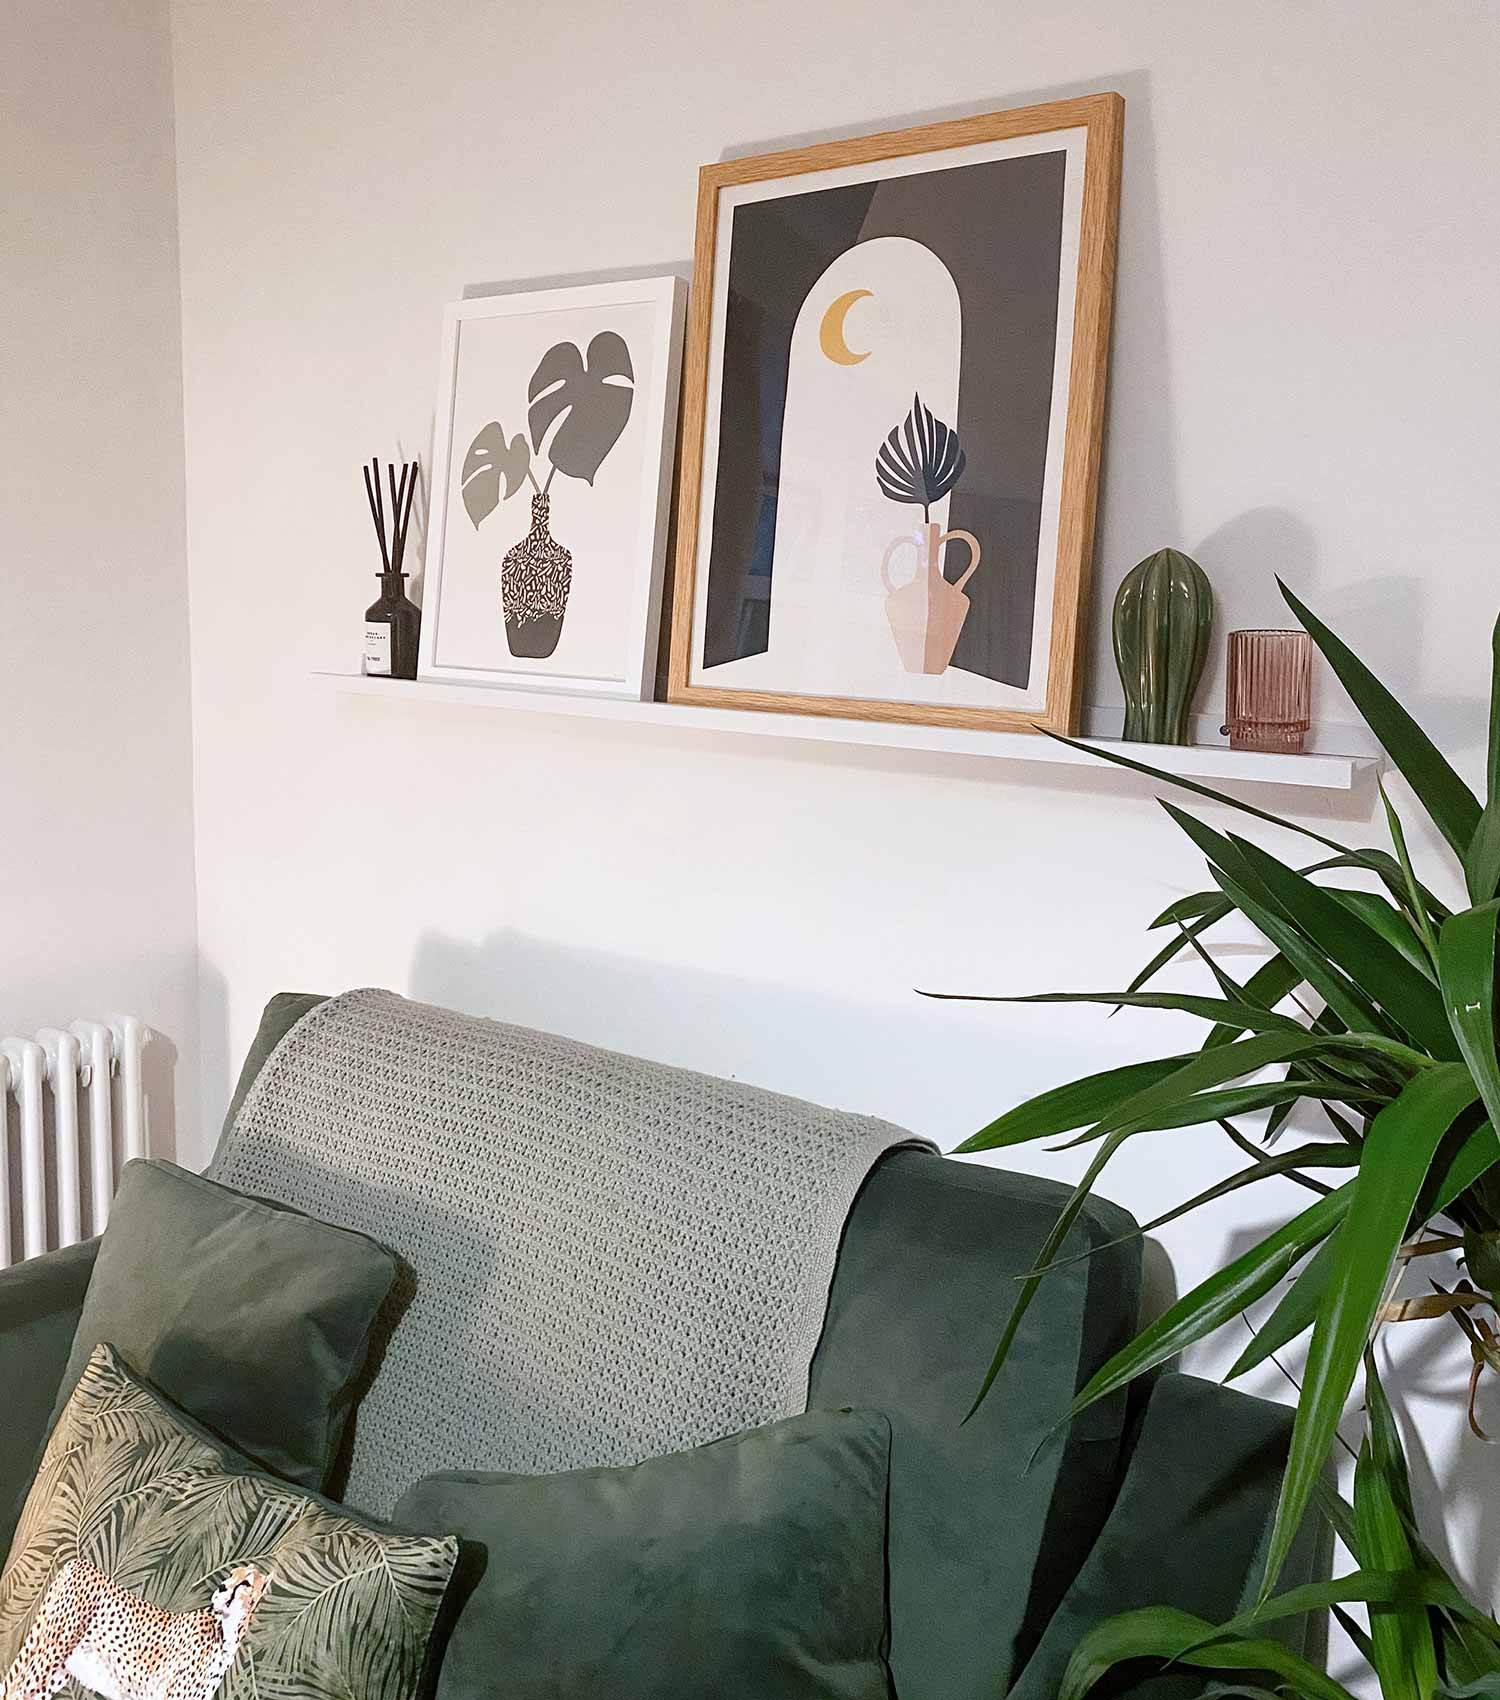 Green Lili Framed Botanical Prints on Picture Shelf above Sofa